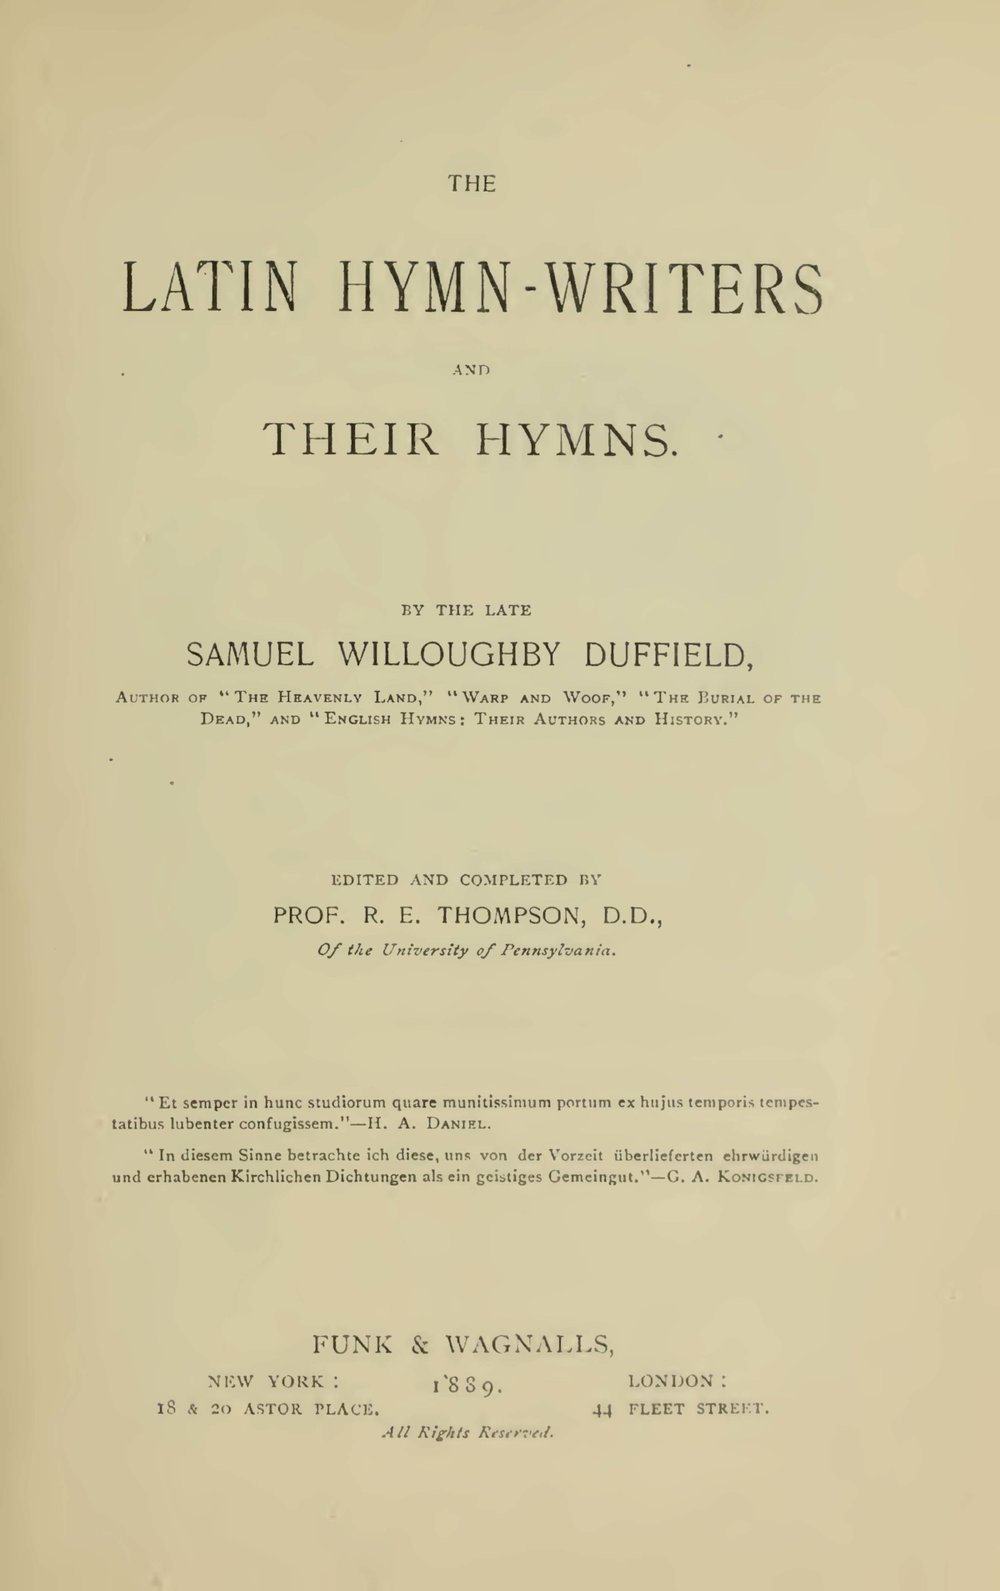 Duffield, Samuel Willoughby, The Latin Hymn-Writers and Their Hymns Title Page.jpg